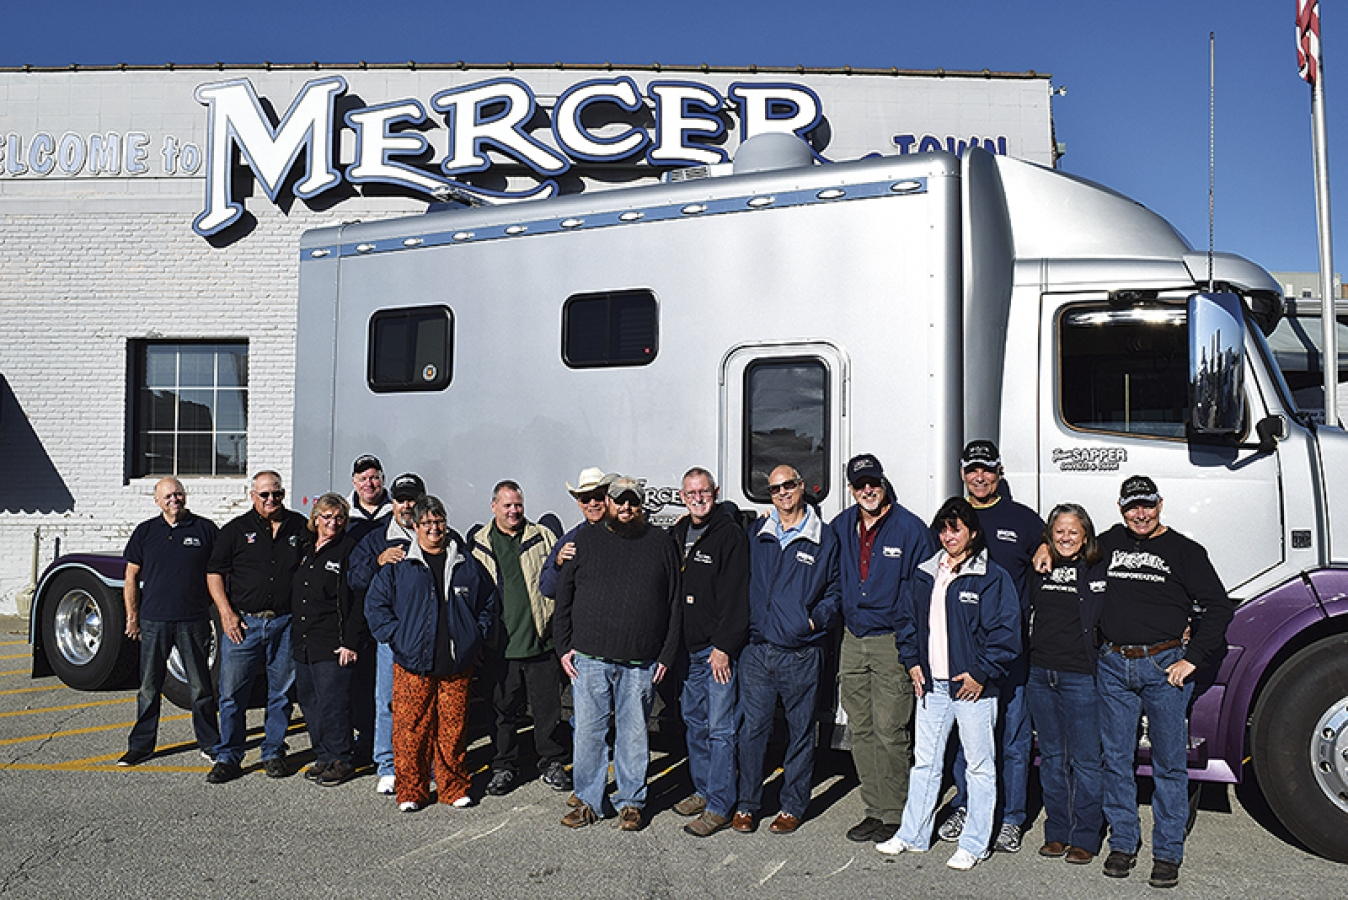 The drivers who are their own bosses at mercer